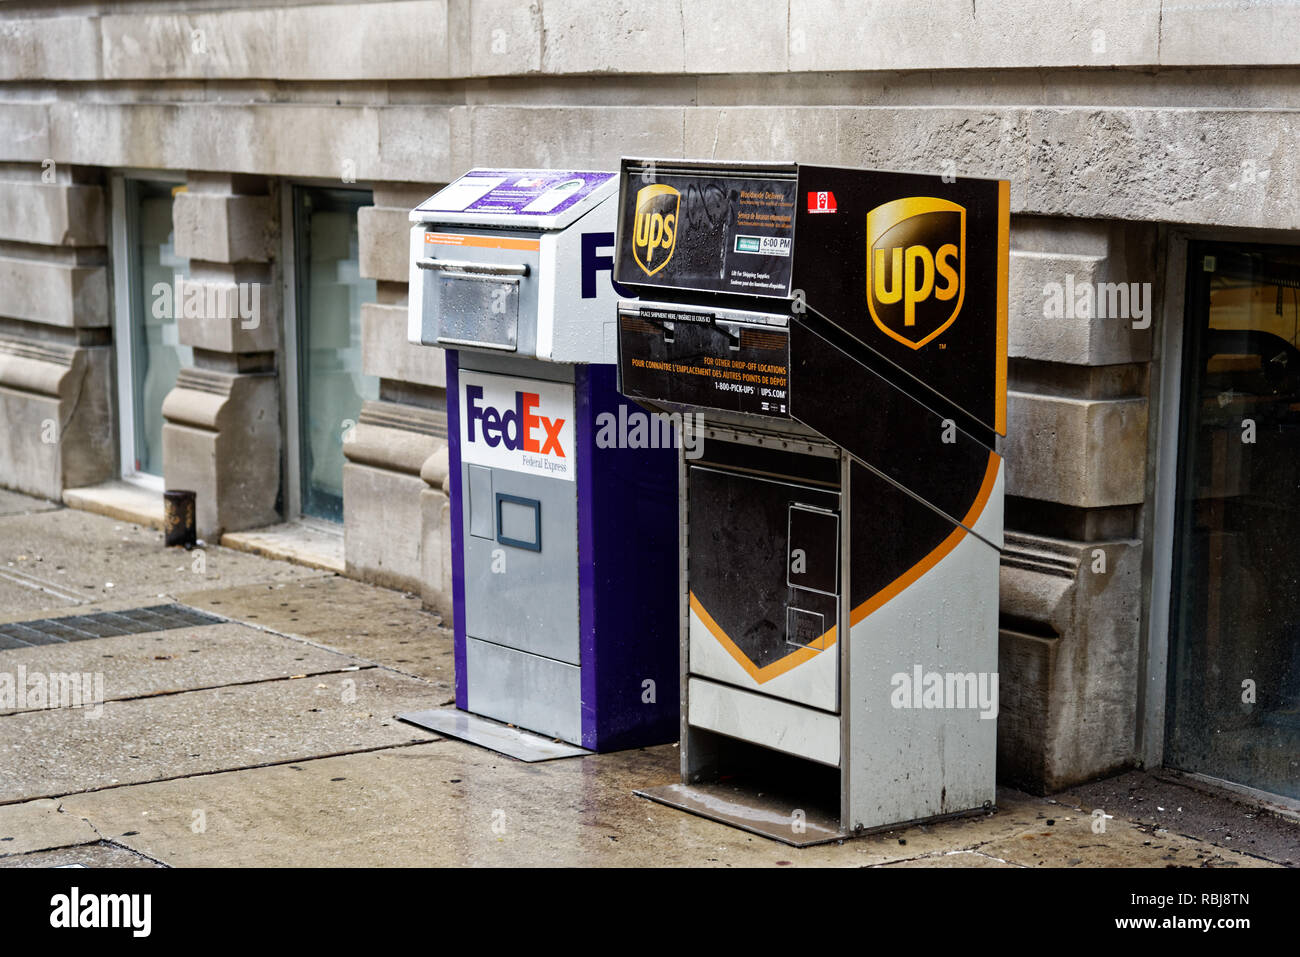 A FedEx and a UPS postage box in Toronto - Stock Image